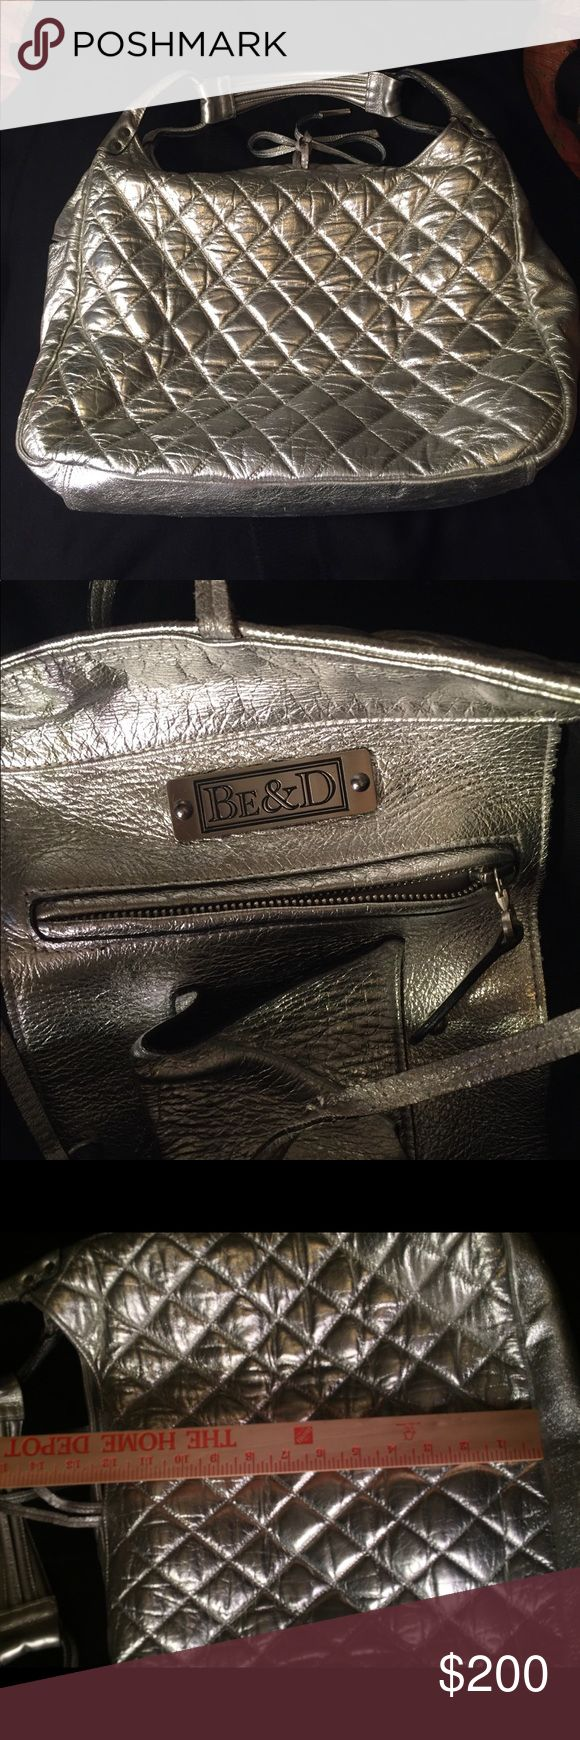 Be&D leather silver shoulder bag in grt condition! This bag is in very good condition.  Some spots on bottom(see pic), Ties closed.  Inside has zipper pocket, cell phone pocket, and another large pocket.  For measurements, see pics. Be & D Bags Shoulder Bags